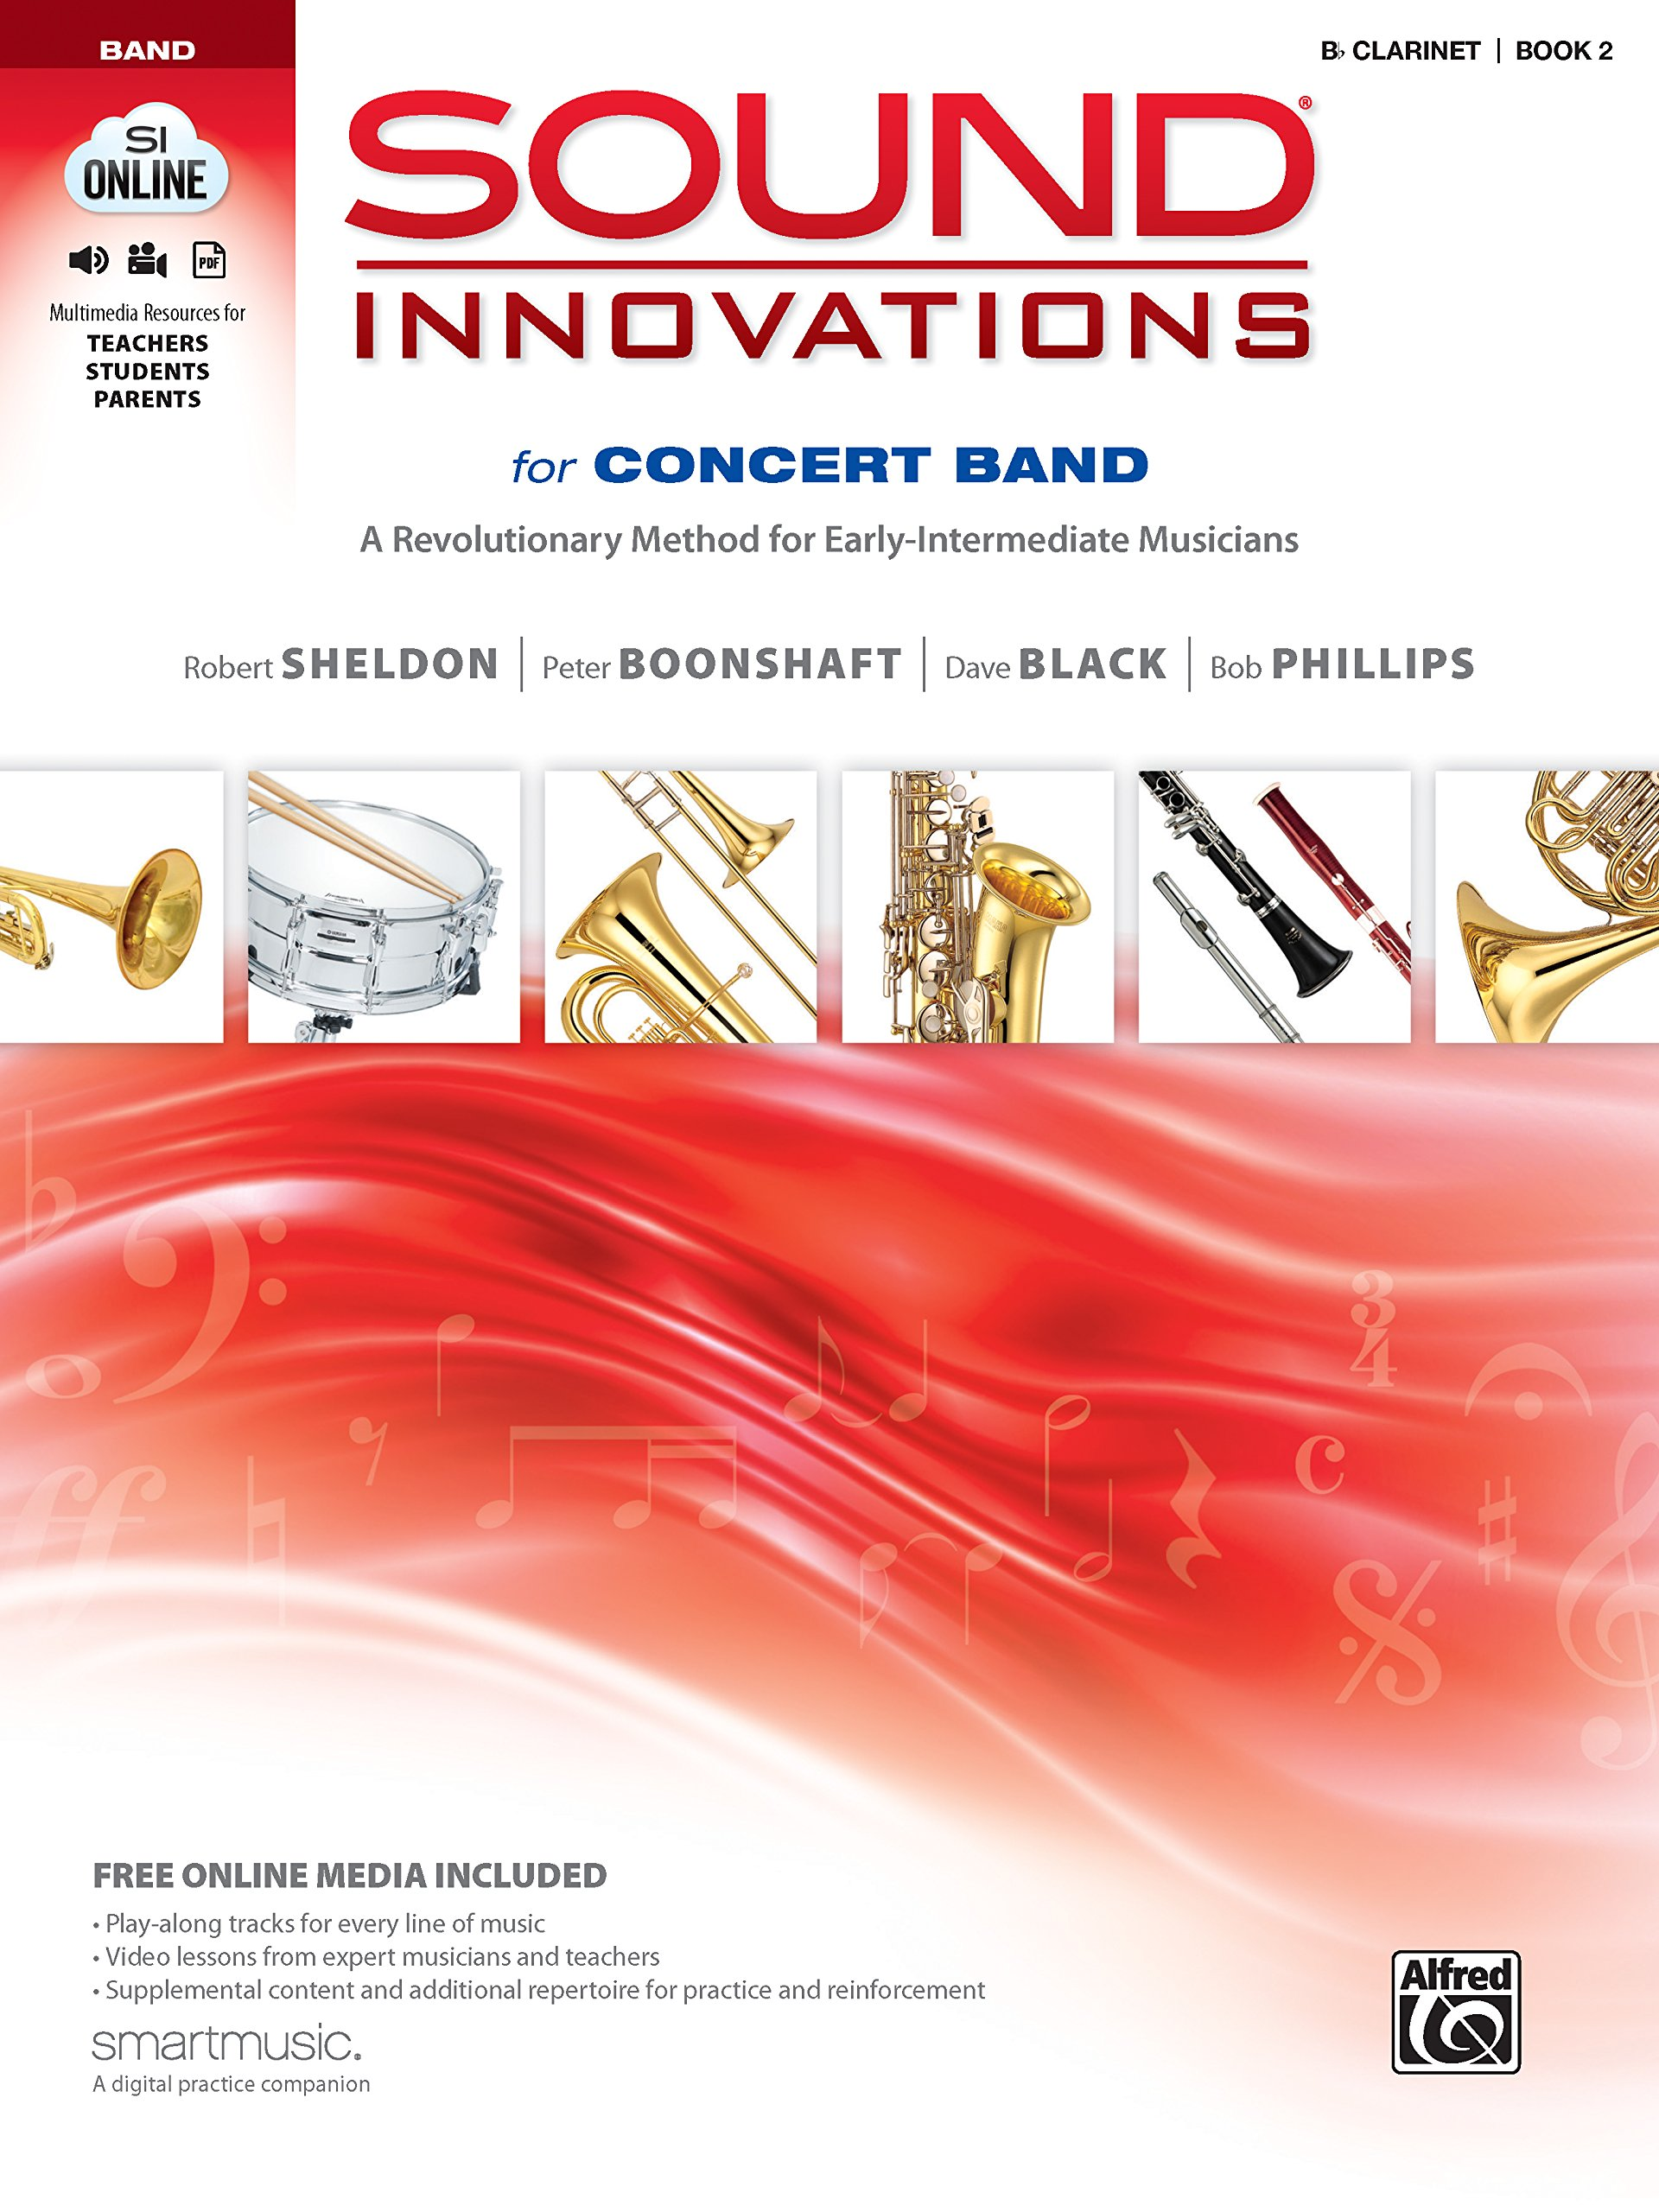 Amazon.com: Sound Innovations for Concert Band, Bk 2: A Revolutionary Method  for Early-Intermediate Musicians (B-flat Clarinet), Book & Online Media ...